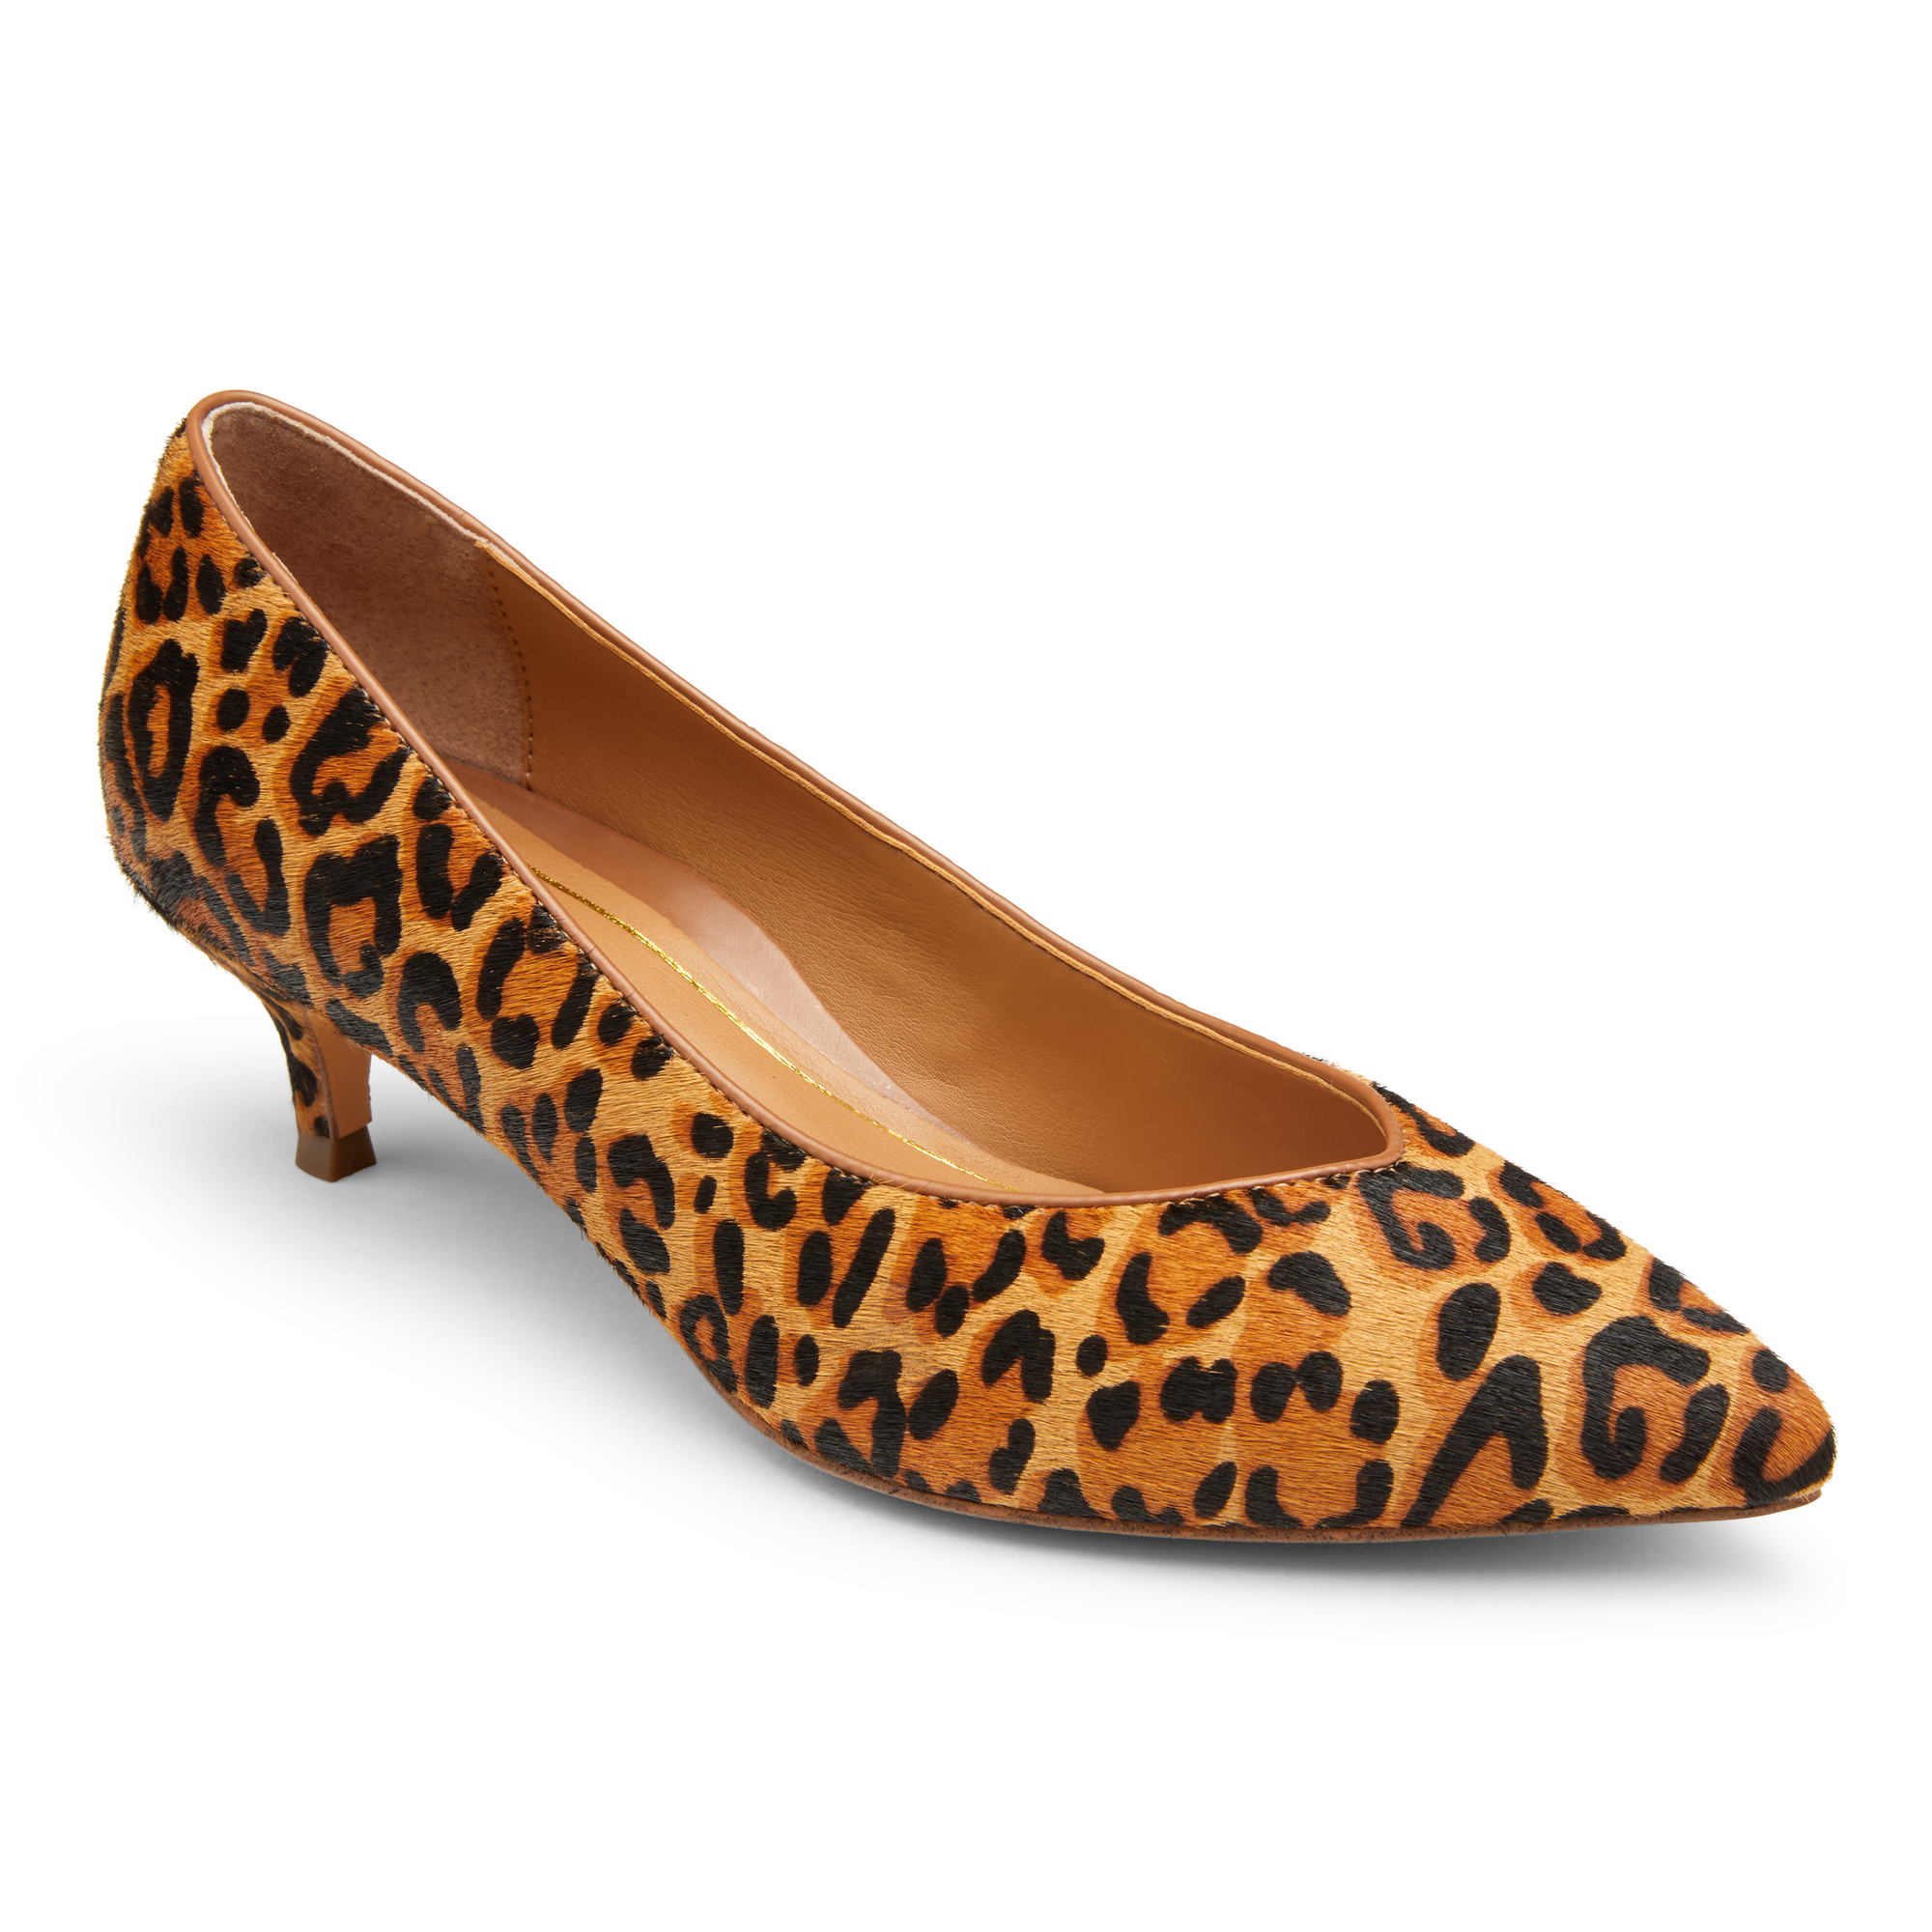 Fashioneered Design With Flattering Curves And A Perfect Heel Height Josie Is Ideal For Long Days At The Office Or Fun Night Kitten Heels Heels Perfect Heels